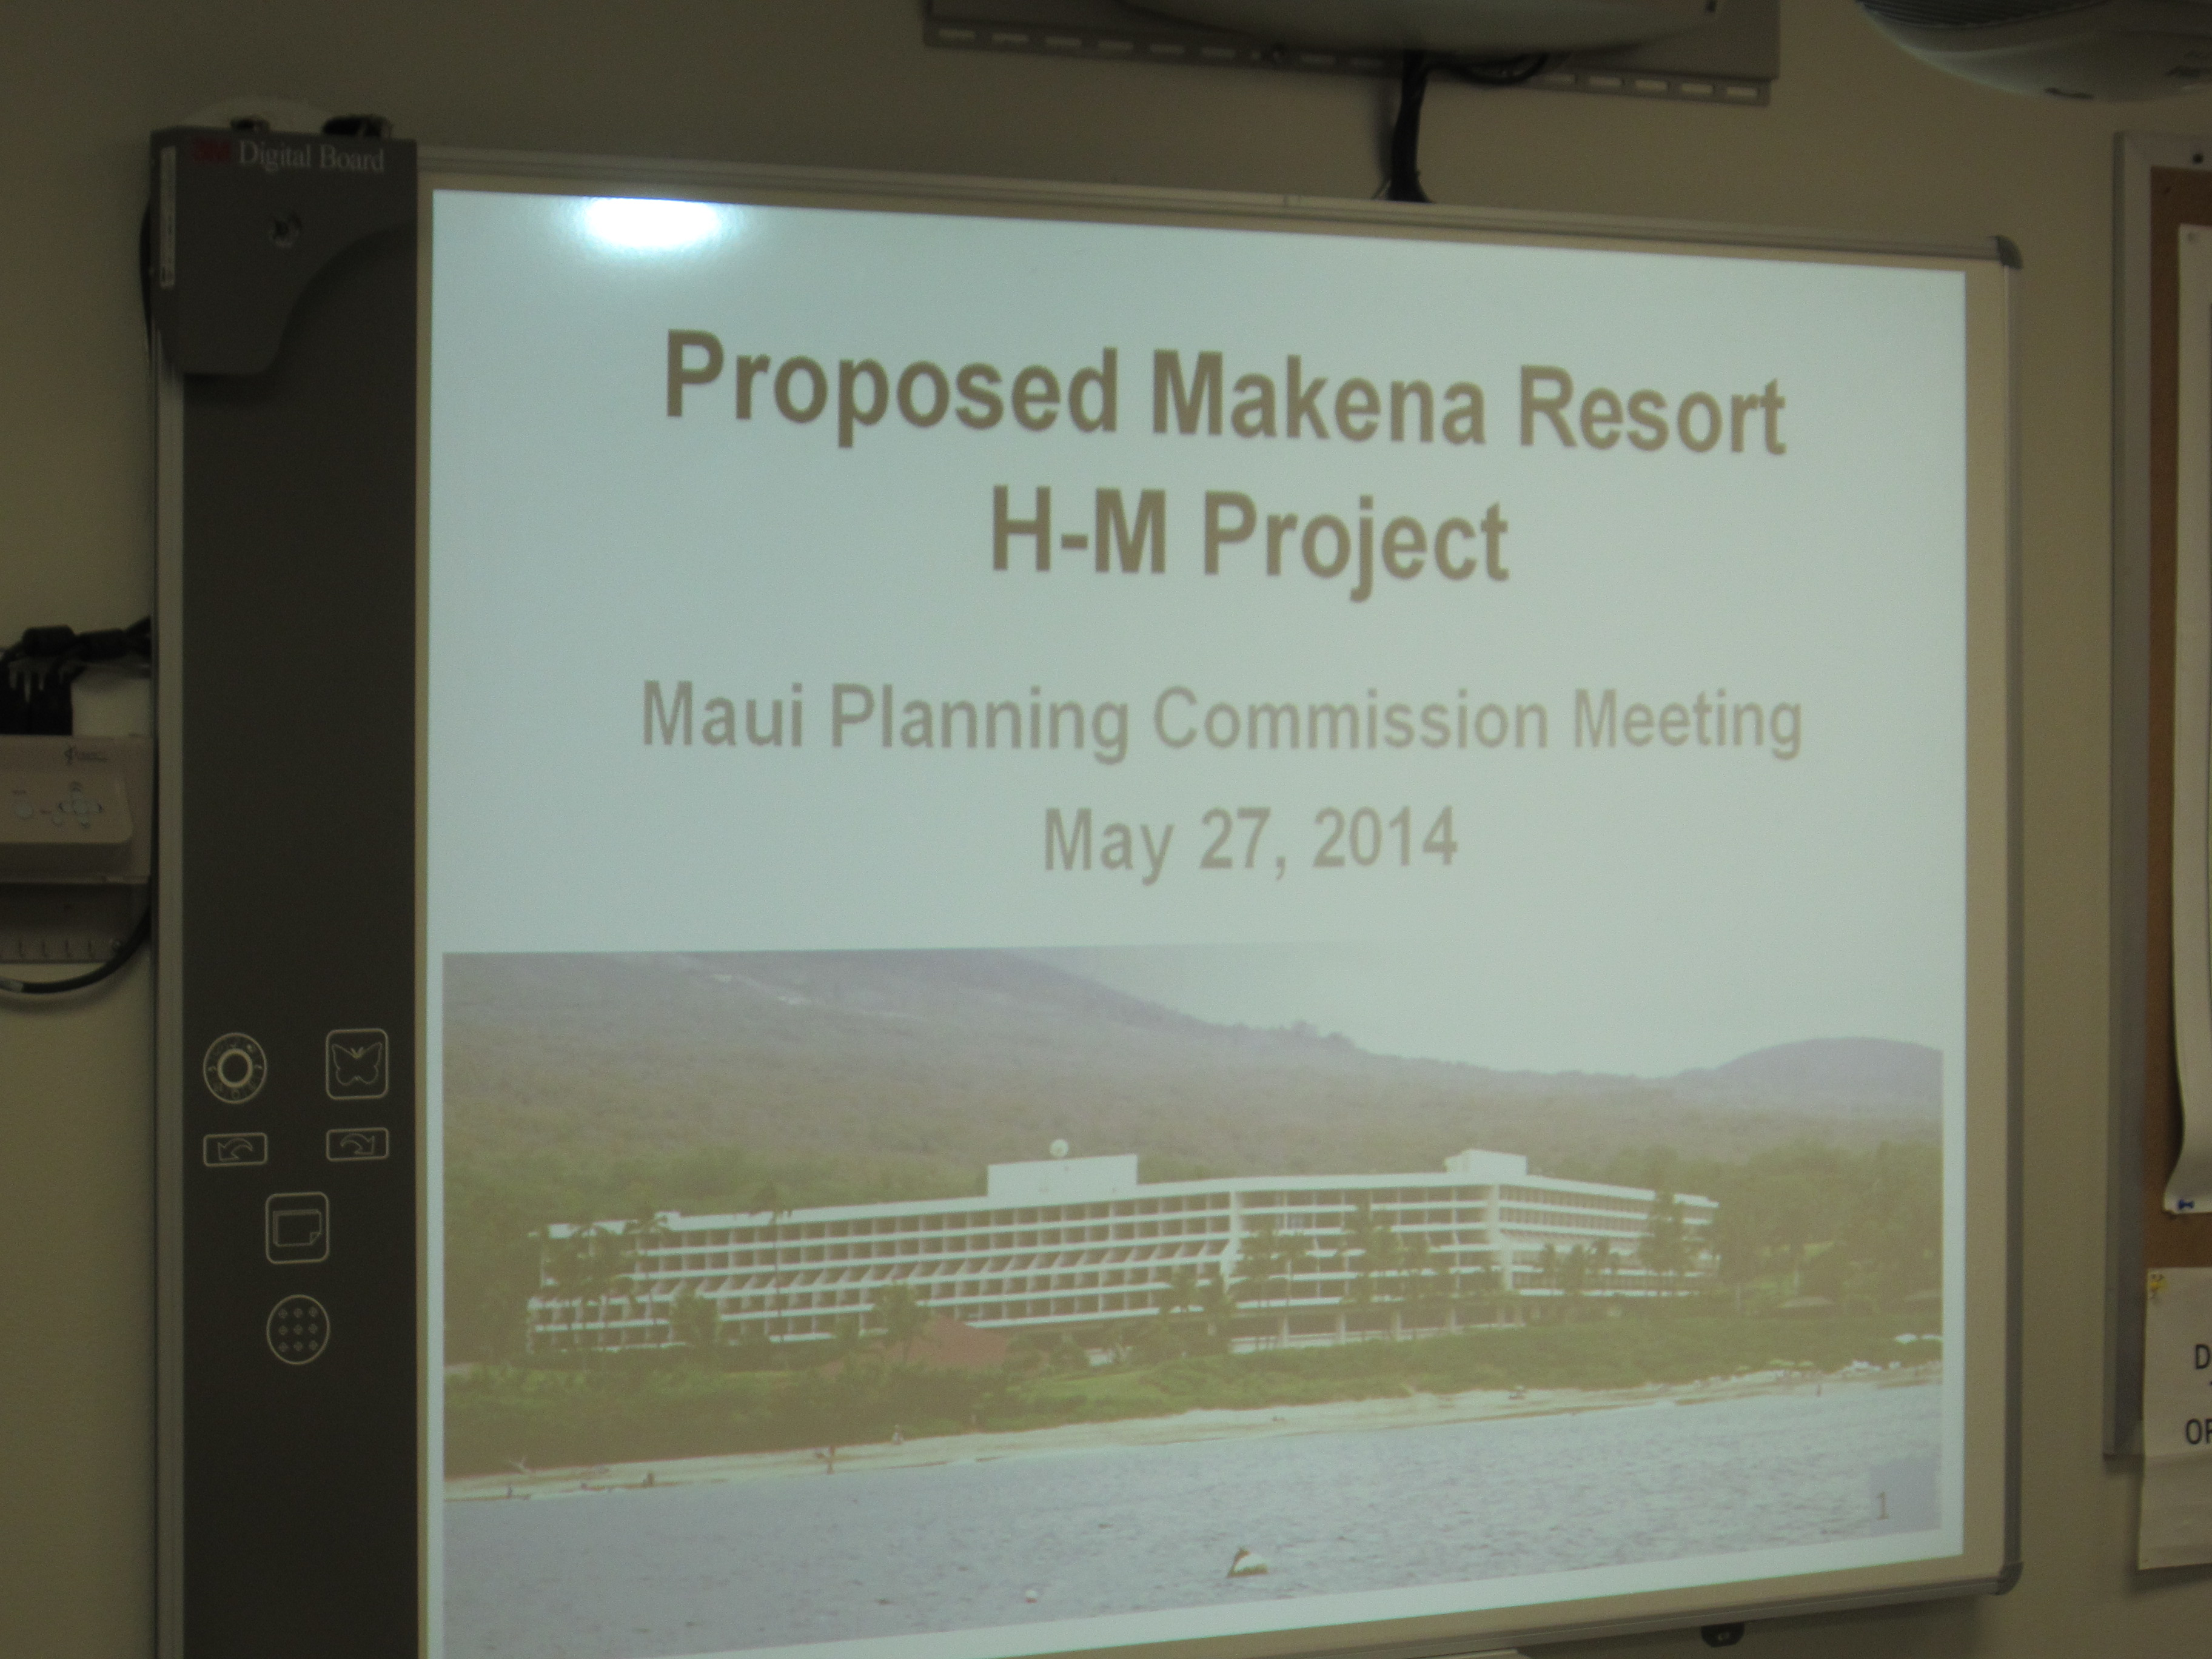 Maui County Planning Commission Meeting on Makena Resort.